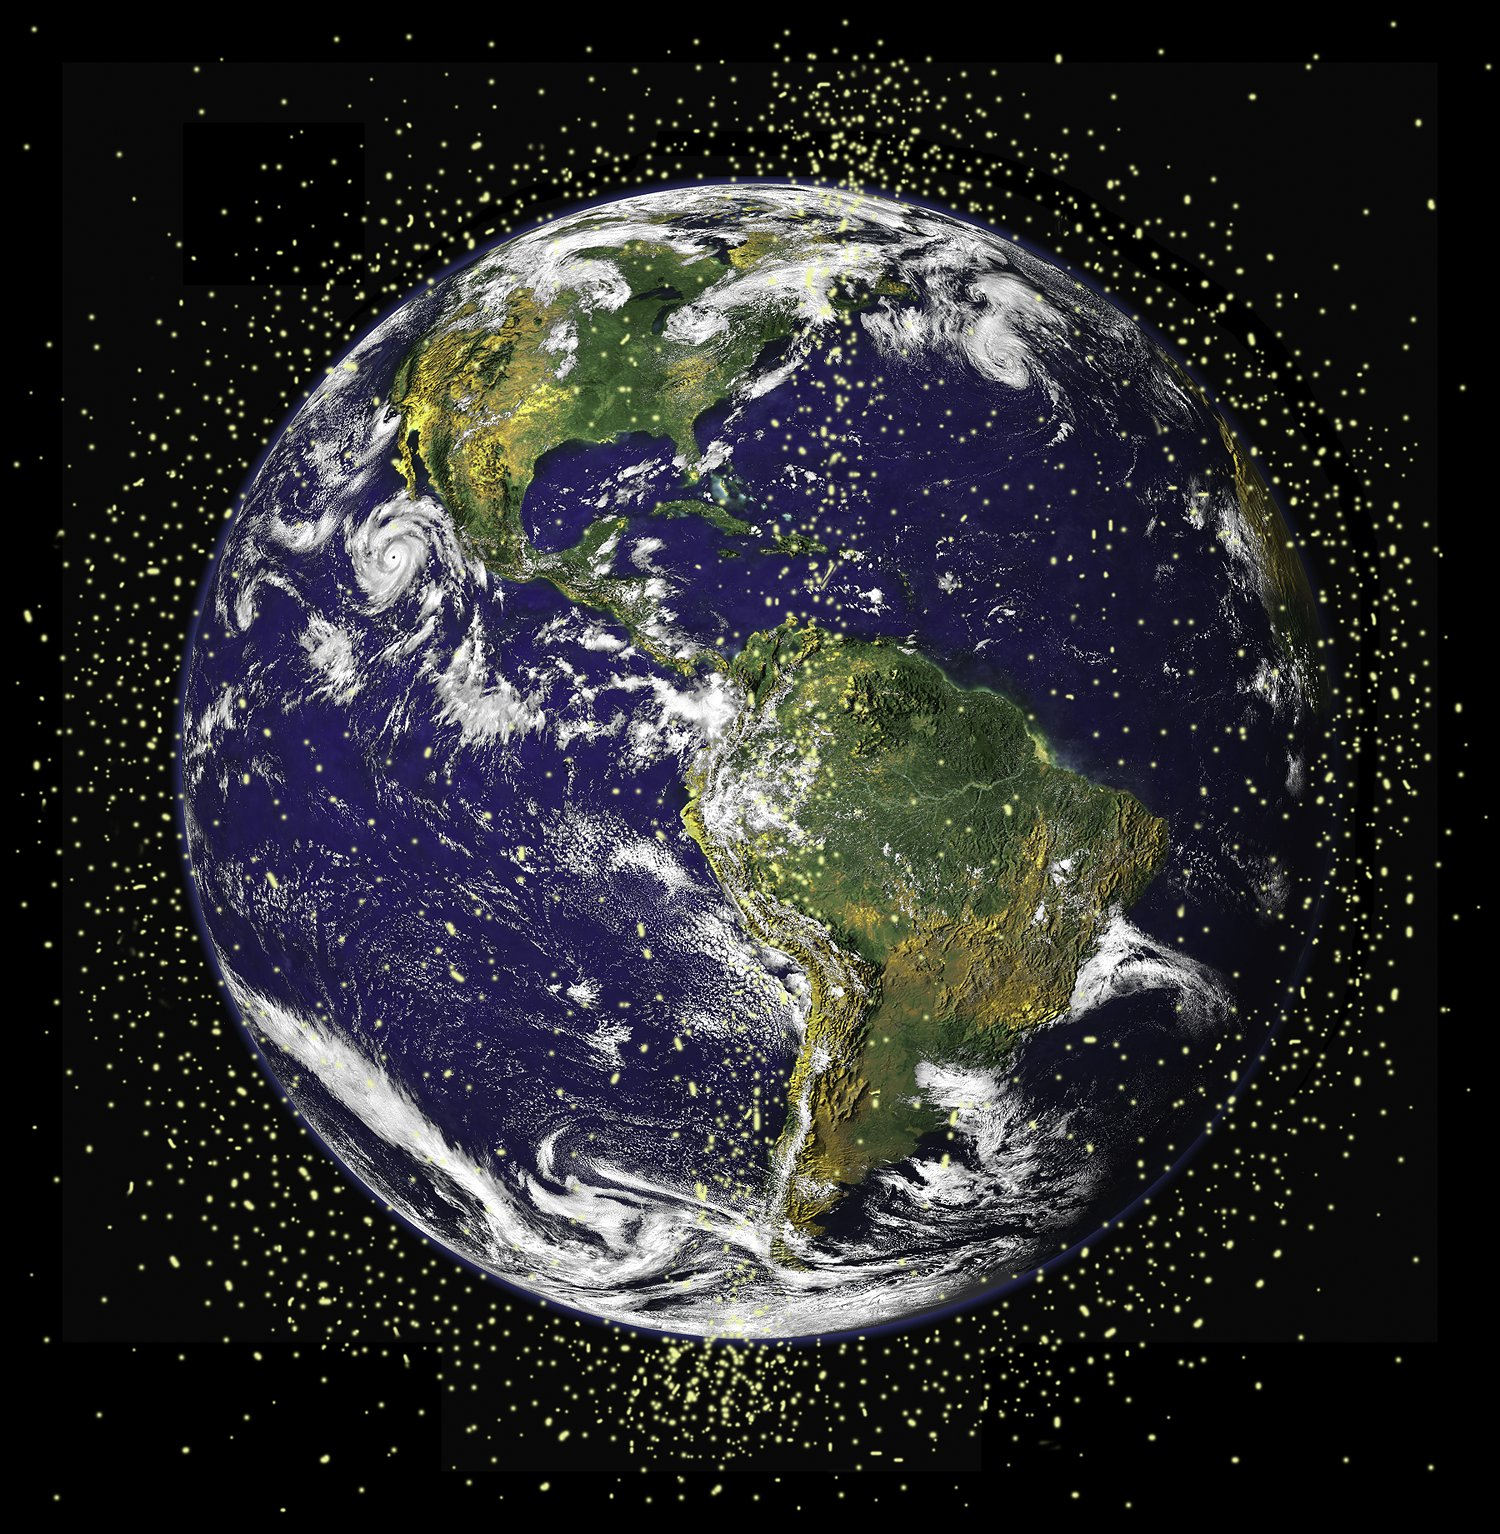 Hundreds of thousands of satellites and pieces of space debris circle the planet in low orbit, zipping by at more than 17,000 miles per hour. Size of yellow points are exaggerated for visibility. Image by NASA